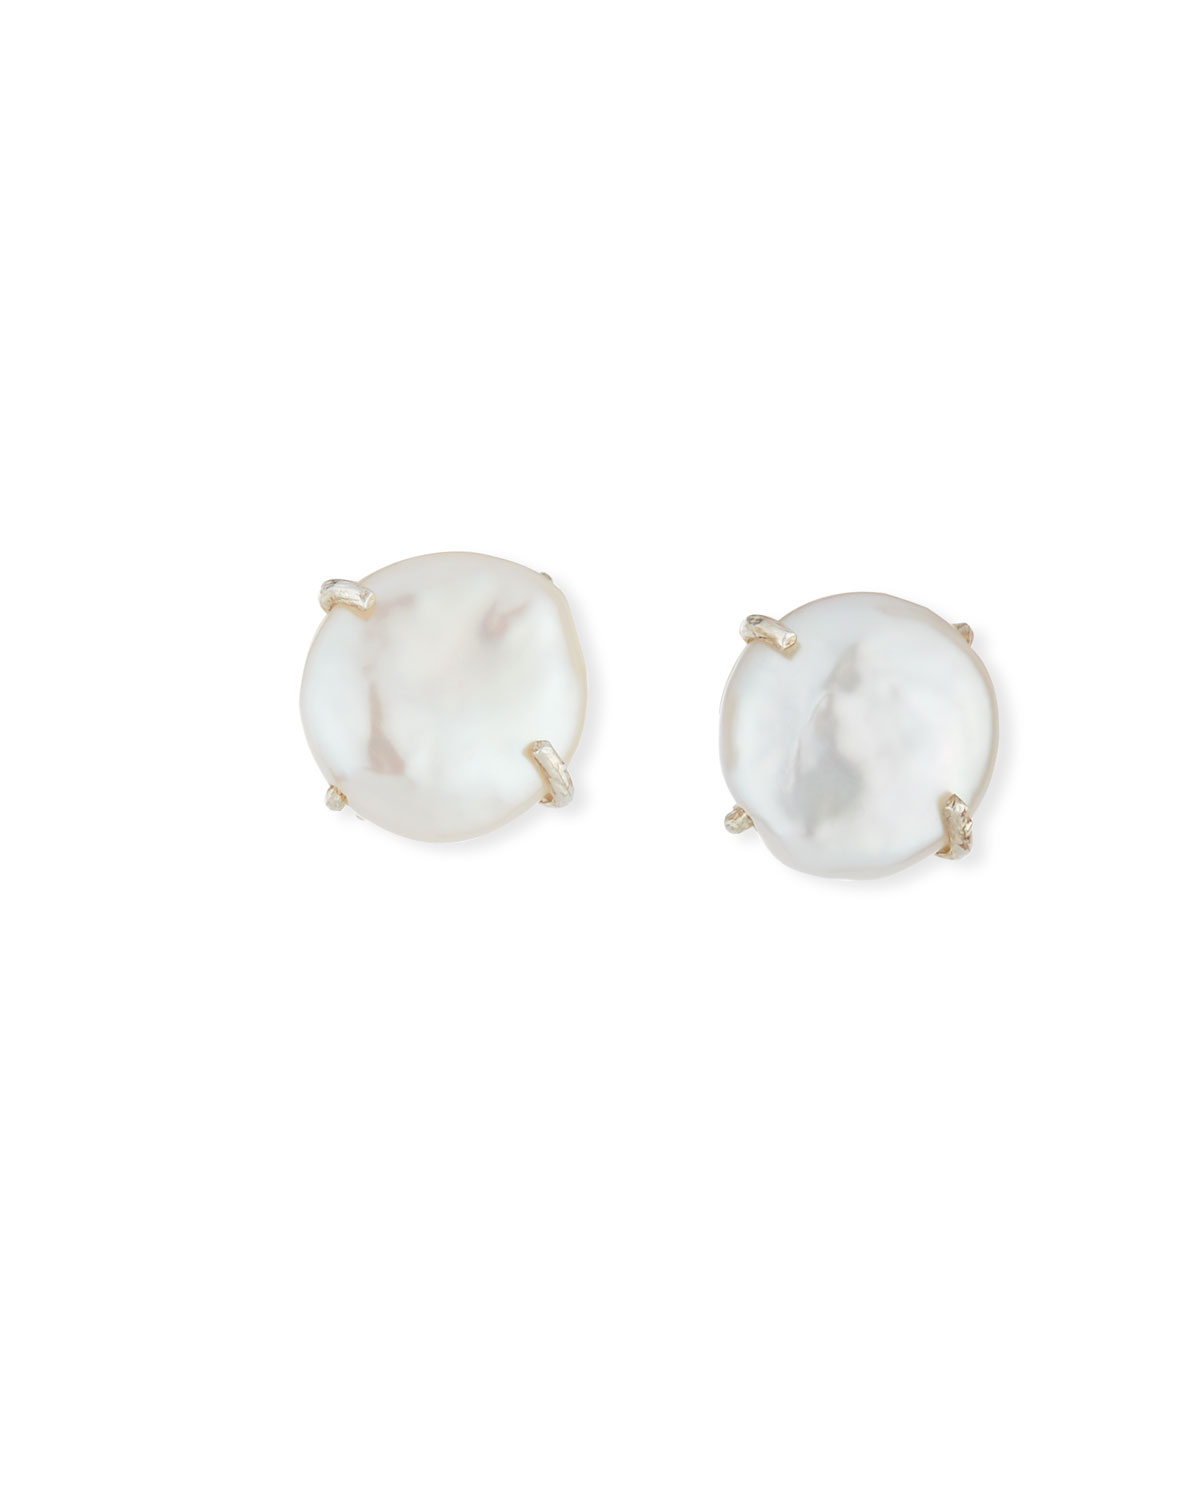 Margo Morrison Round Coin Pearl Clip-On Earrings XwQa6LT6qS